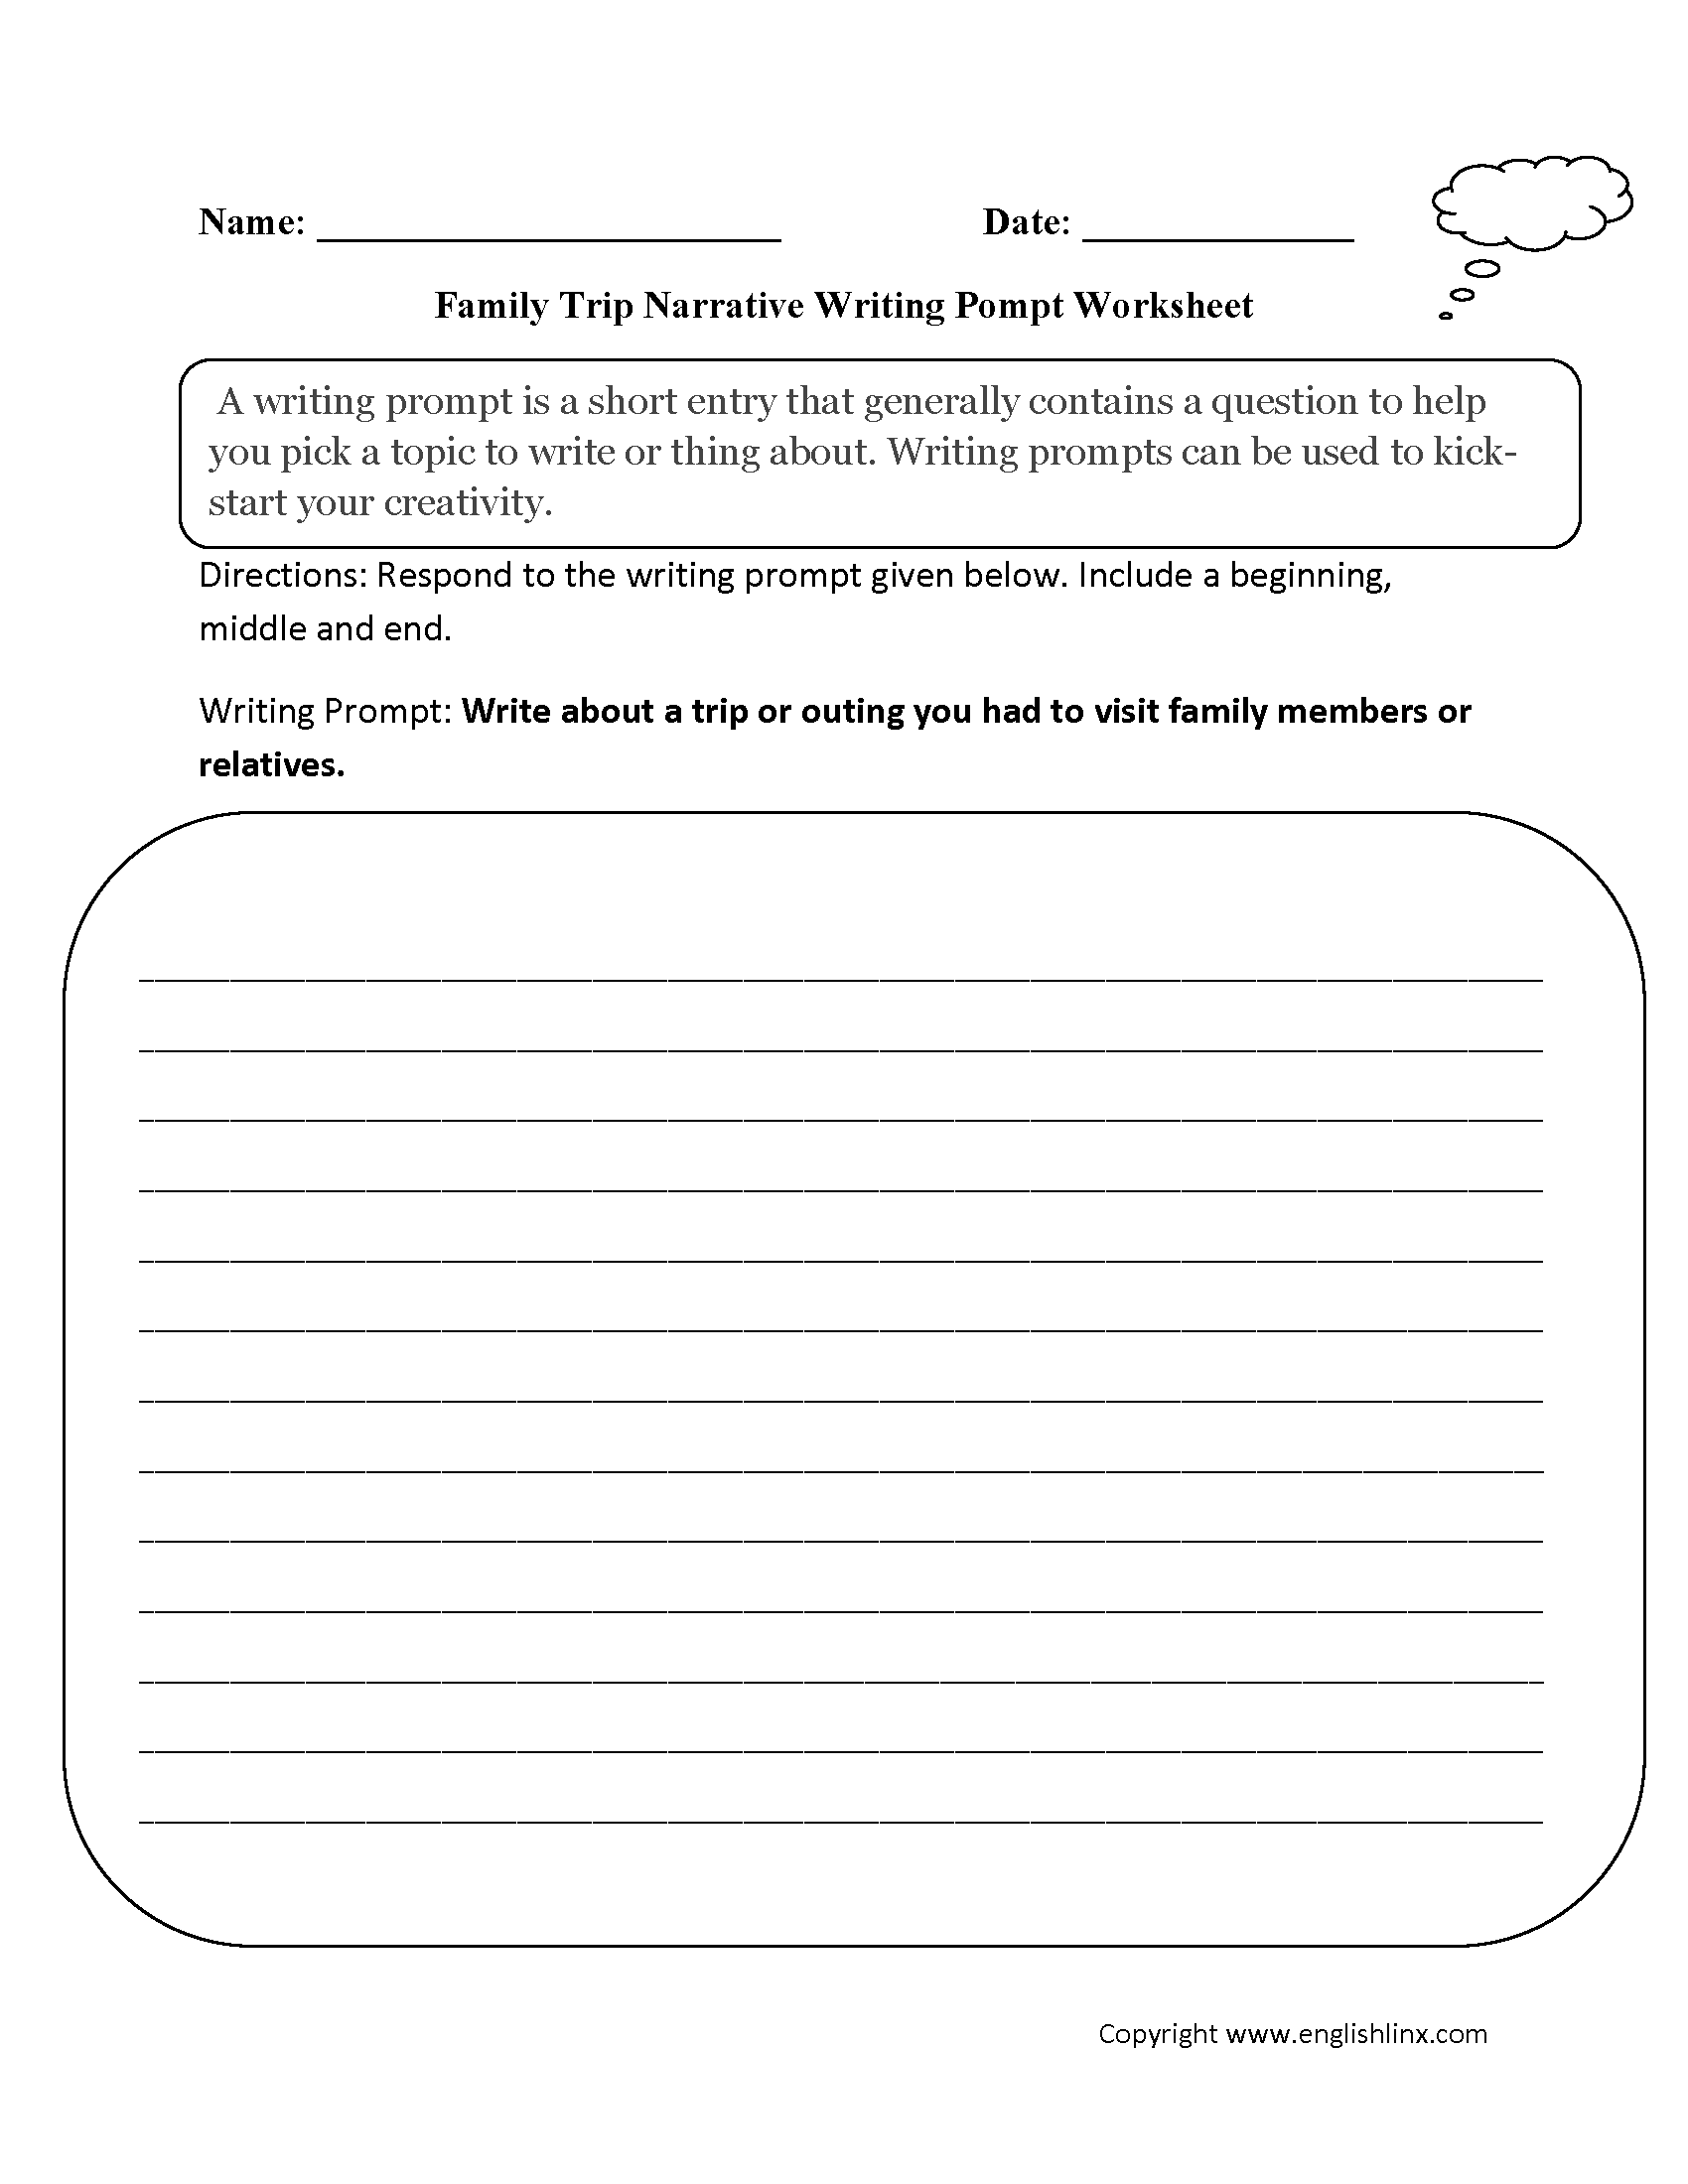 Creative Writing Prompts Worksheets